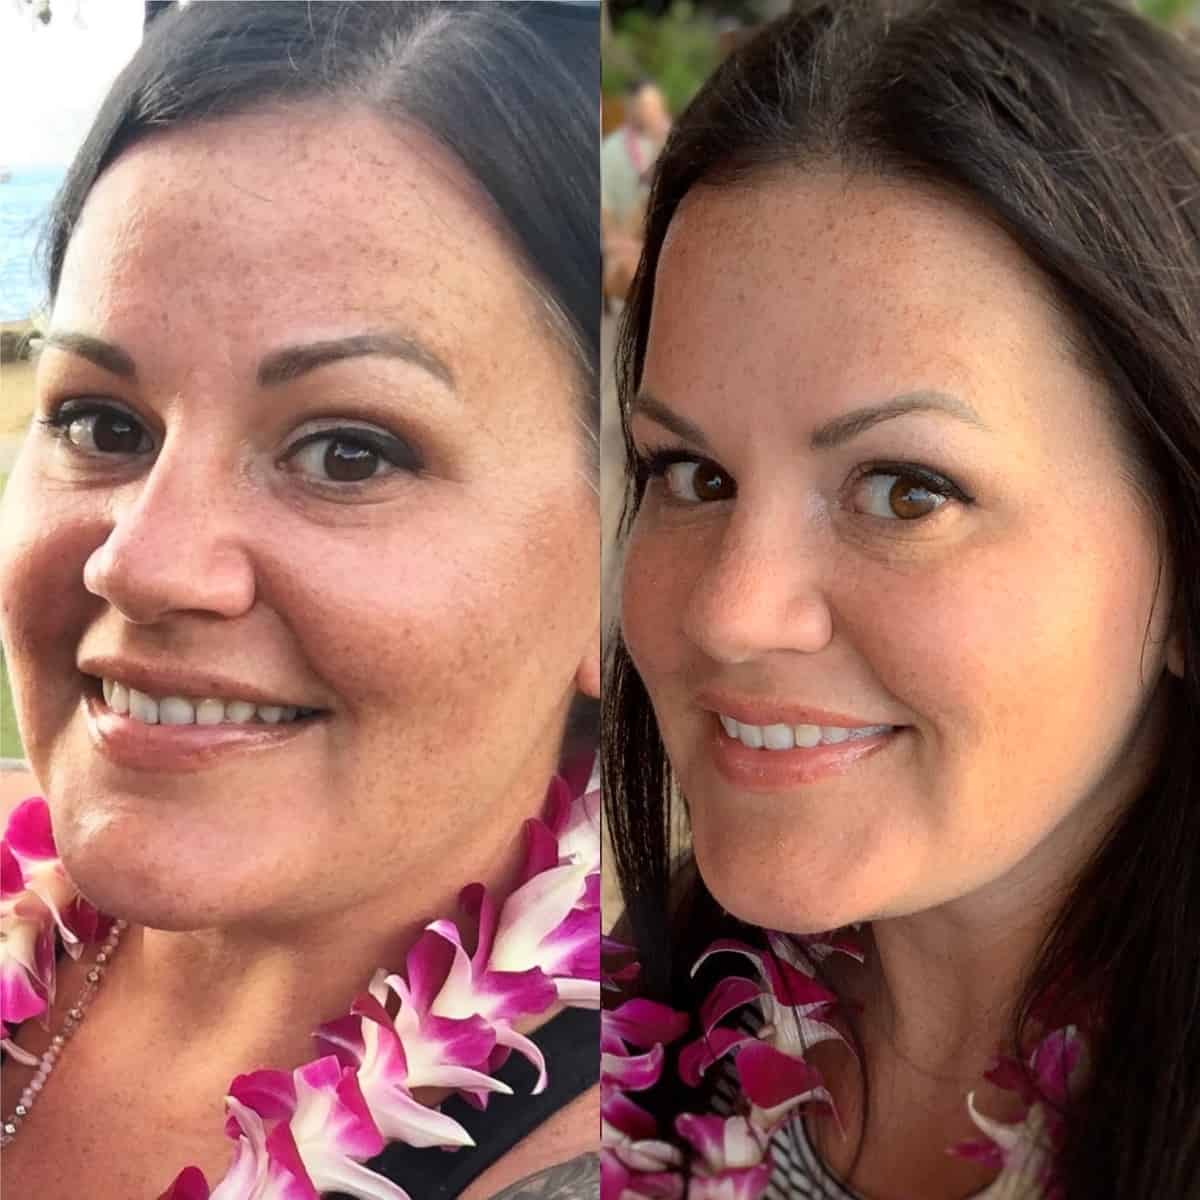 Side by side before and after photo: on the left, a selfie of Kyndra Holley before using the Overnight Resurfacing Peel. On the right, in the after photo, Kyndra's skin is glowing and more even toned, with a reduction in fine lines.